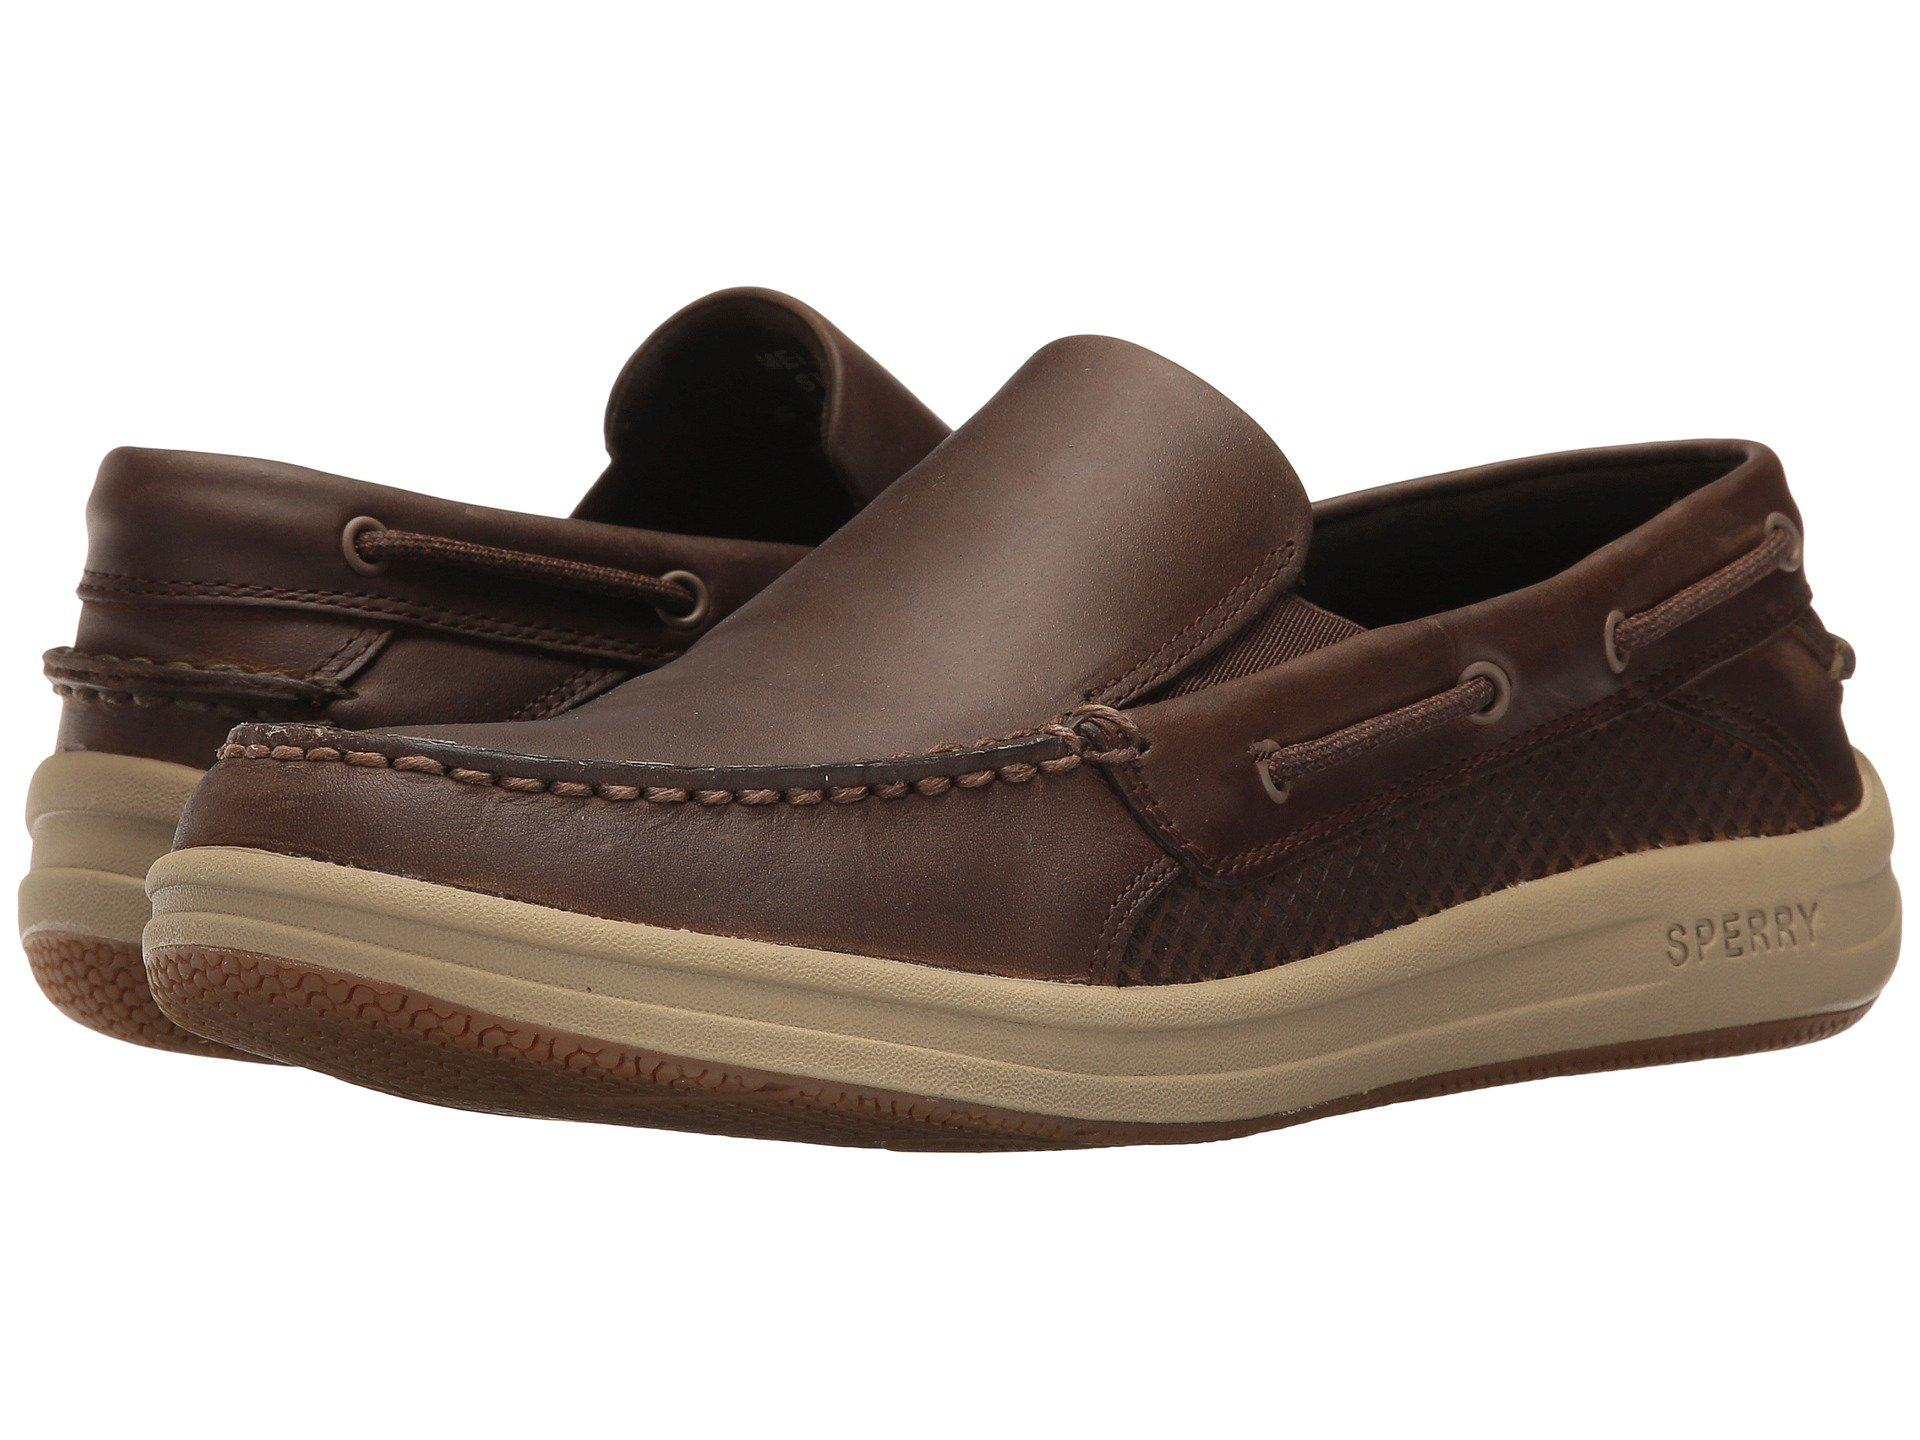 Sperry Mens Gamefish Slip On Boat Shoes